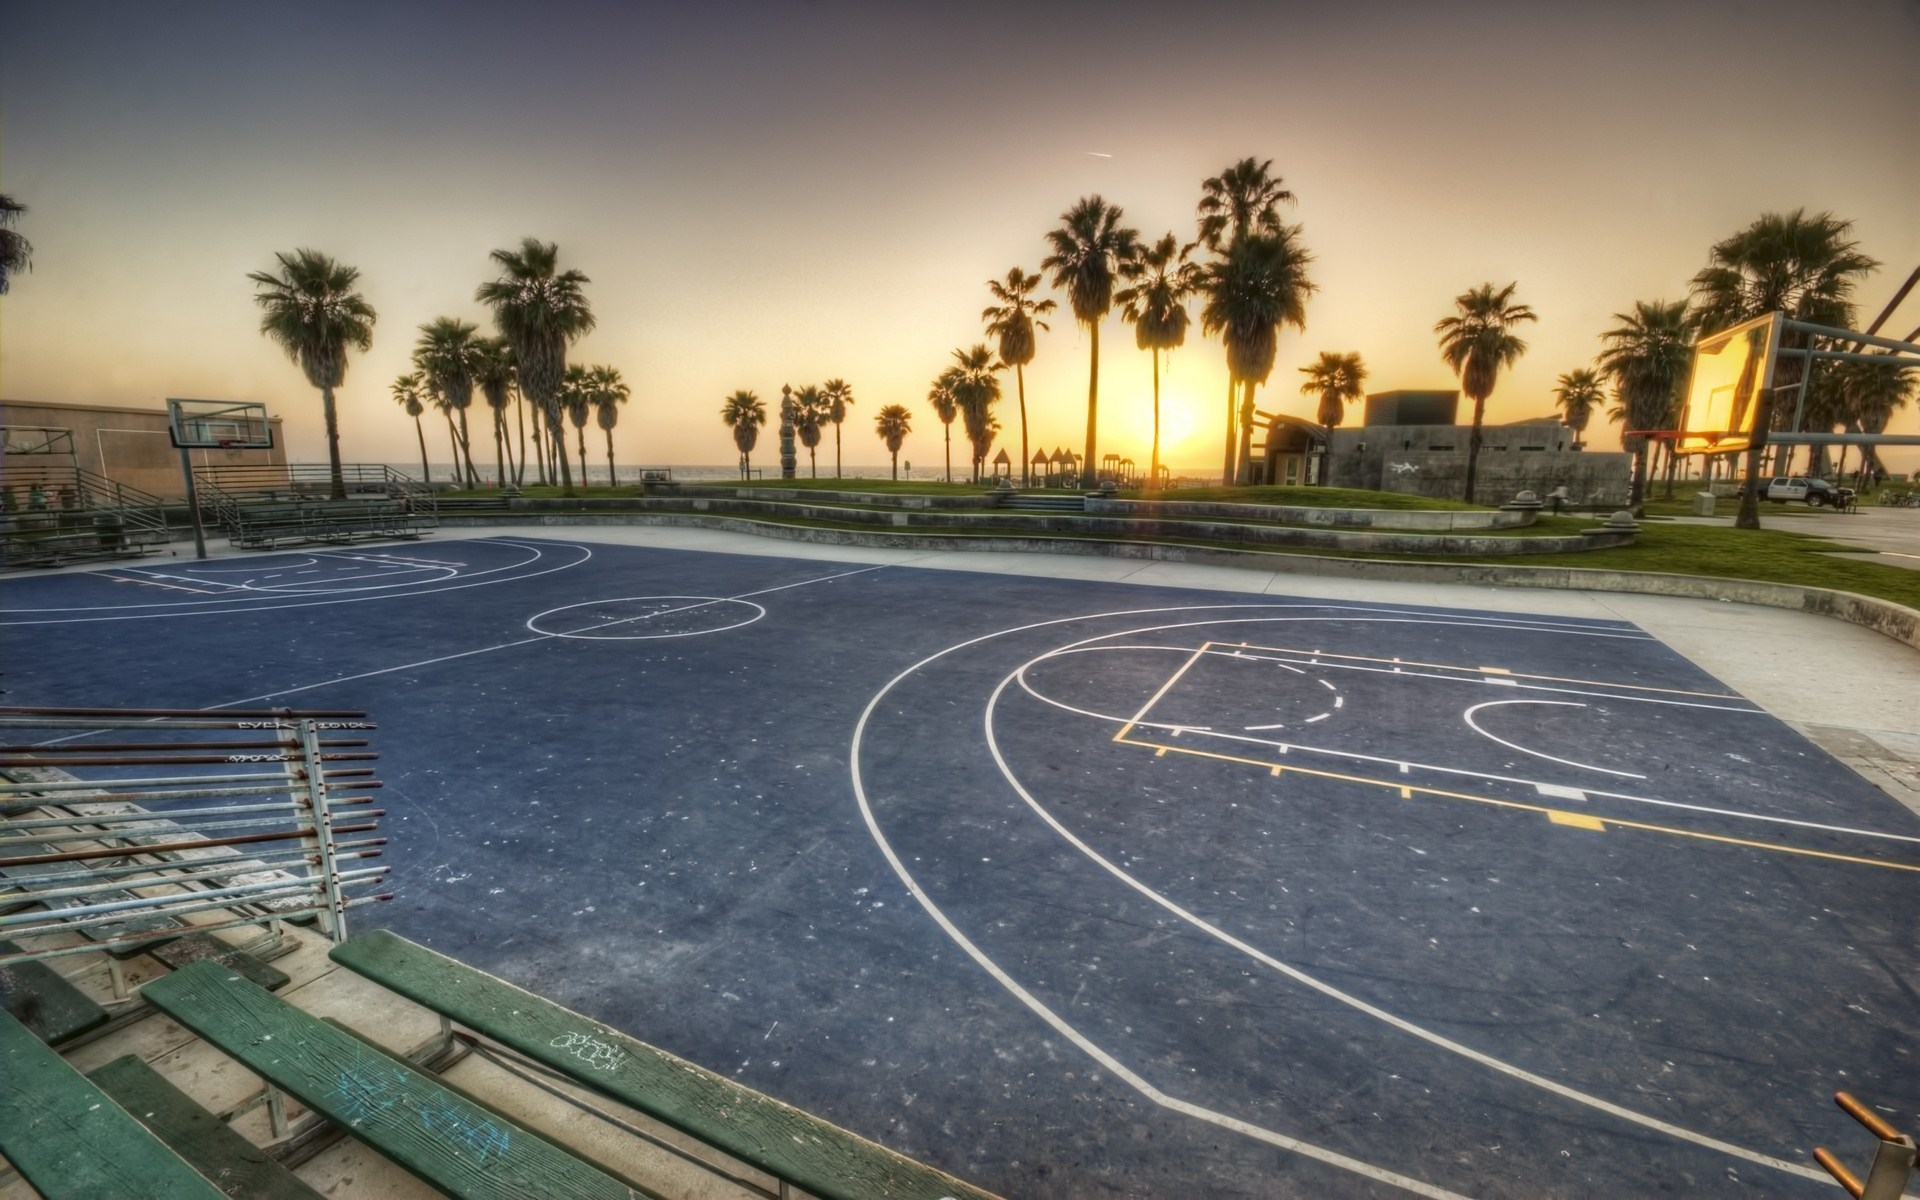 download Venice Beach For A Pickup Basketball Game This 1920x1200